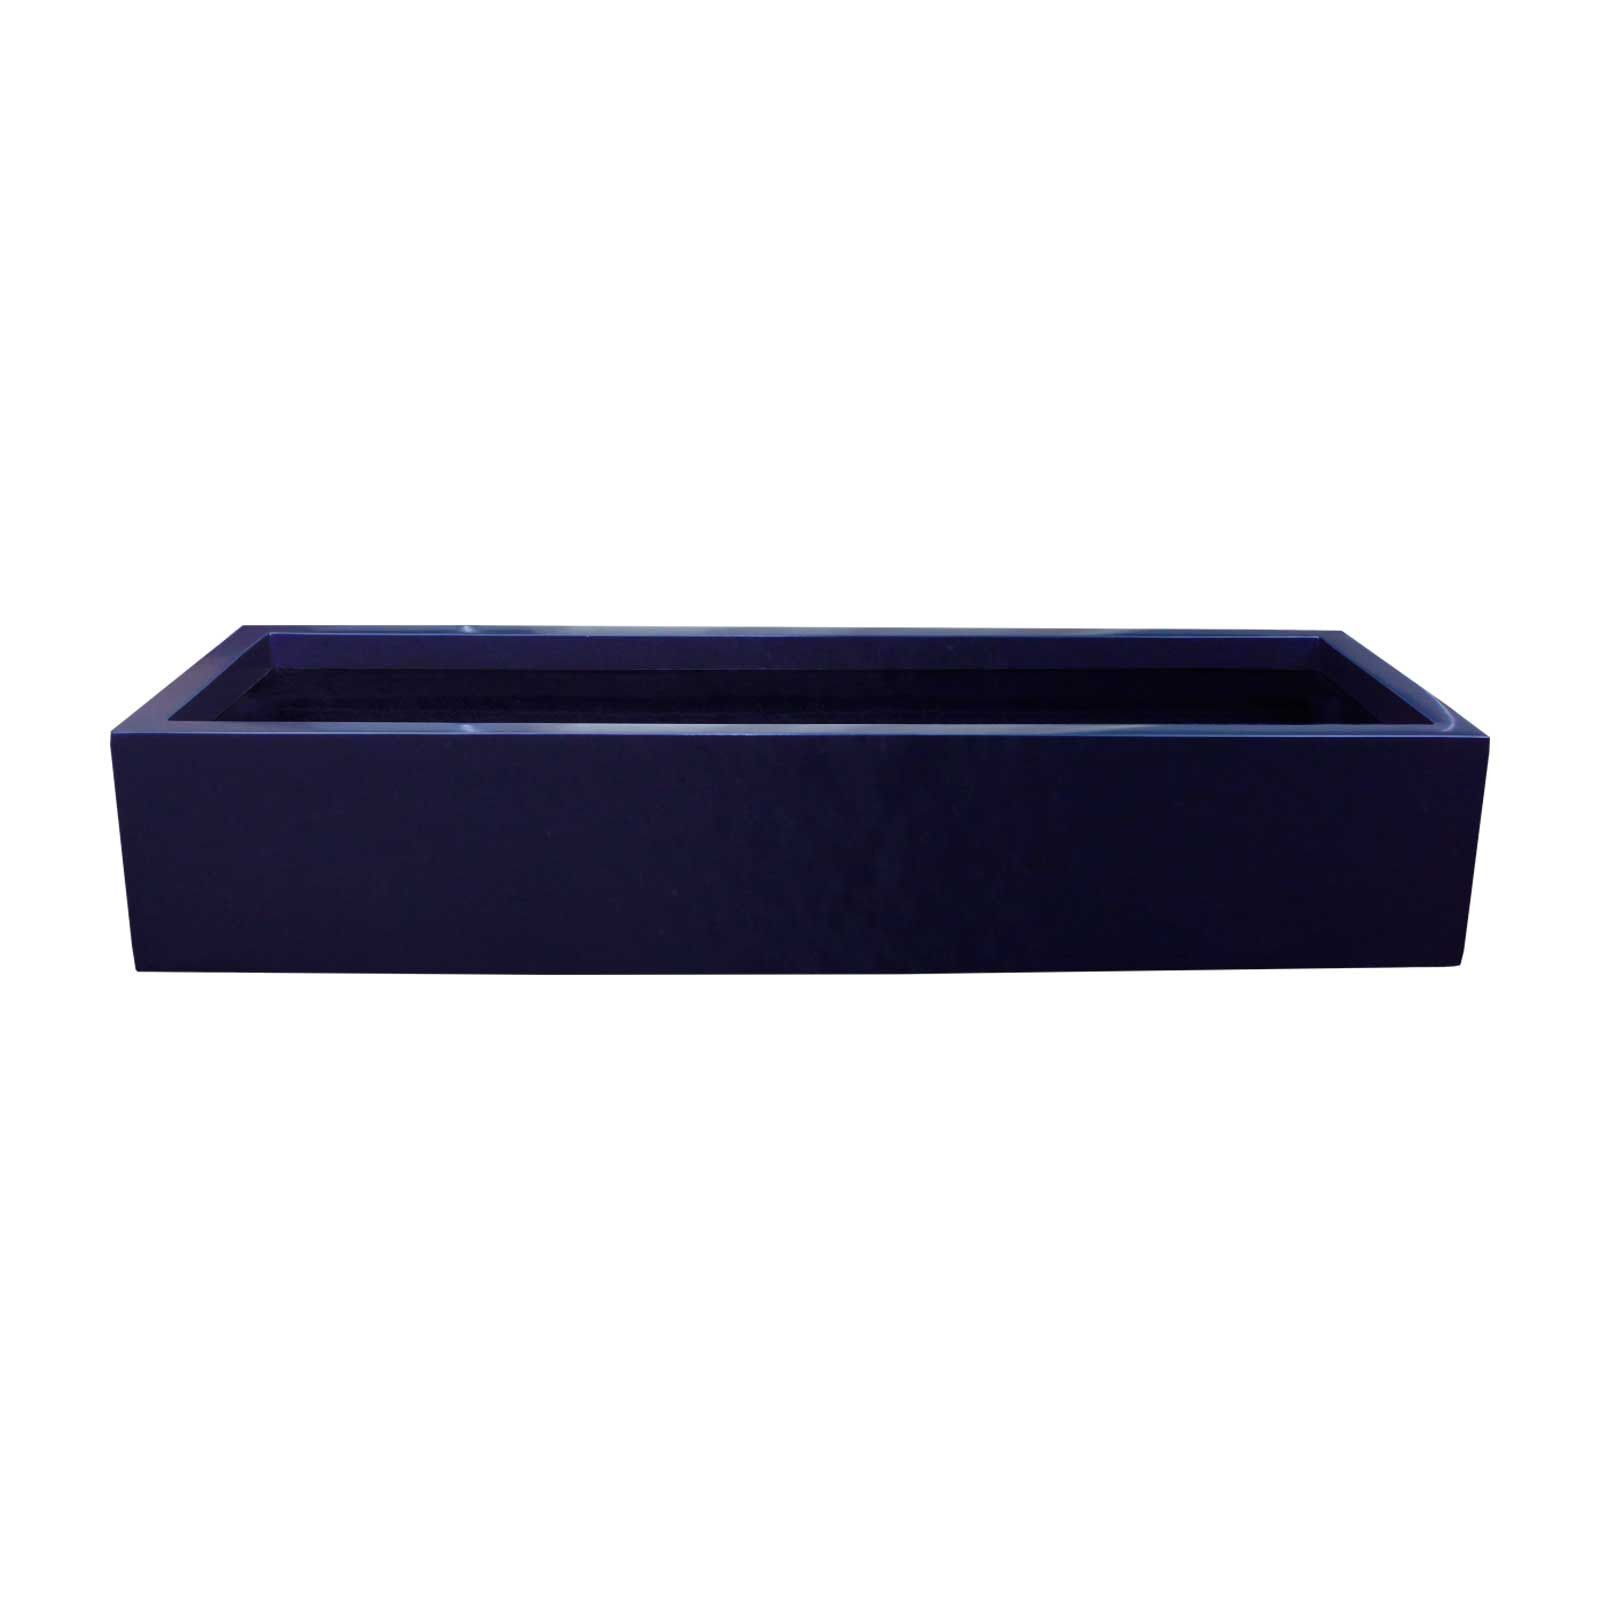 the rectangular wood loll garden box boxes contemporary designs planters for modern rectangle planter